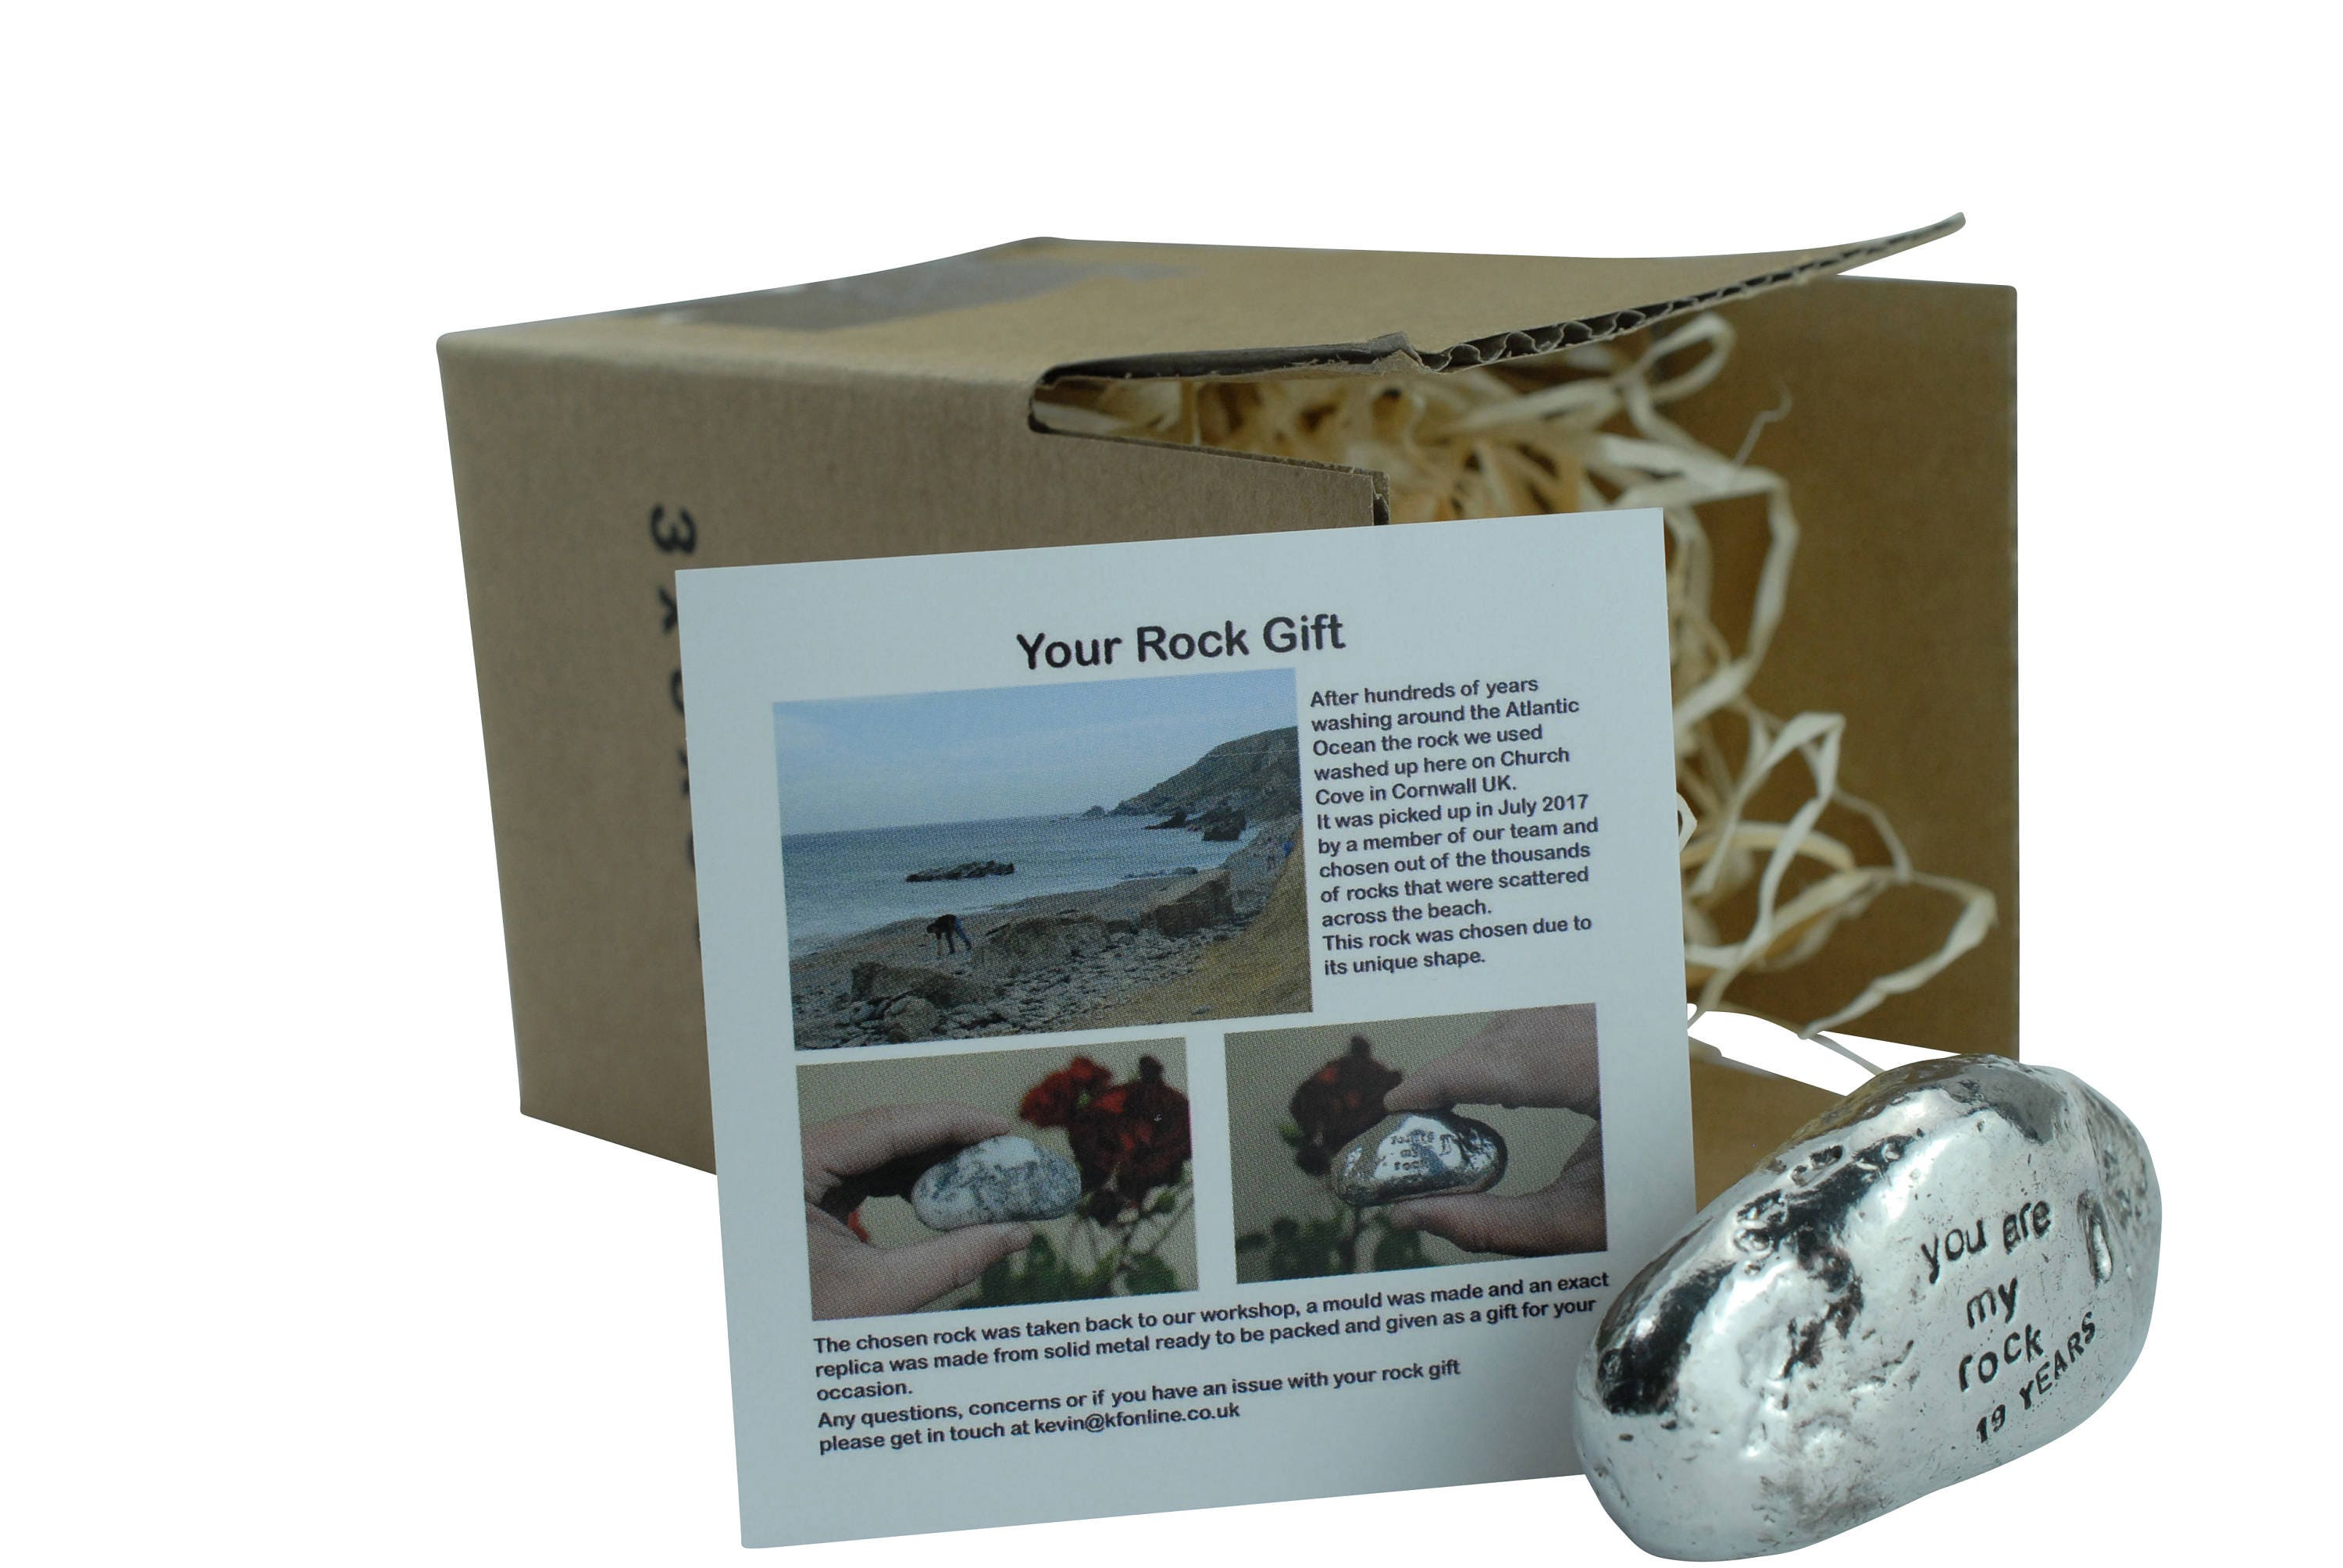 Gift For 19th Wedding Anniversary: 19th Anniversary You Are My Rock Gift Idea Solid Metal Heavy